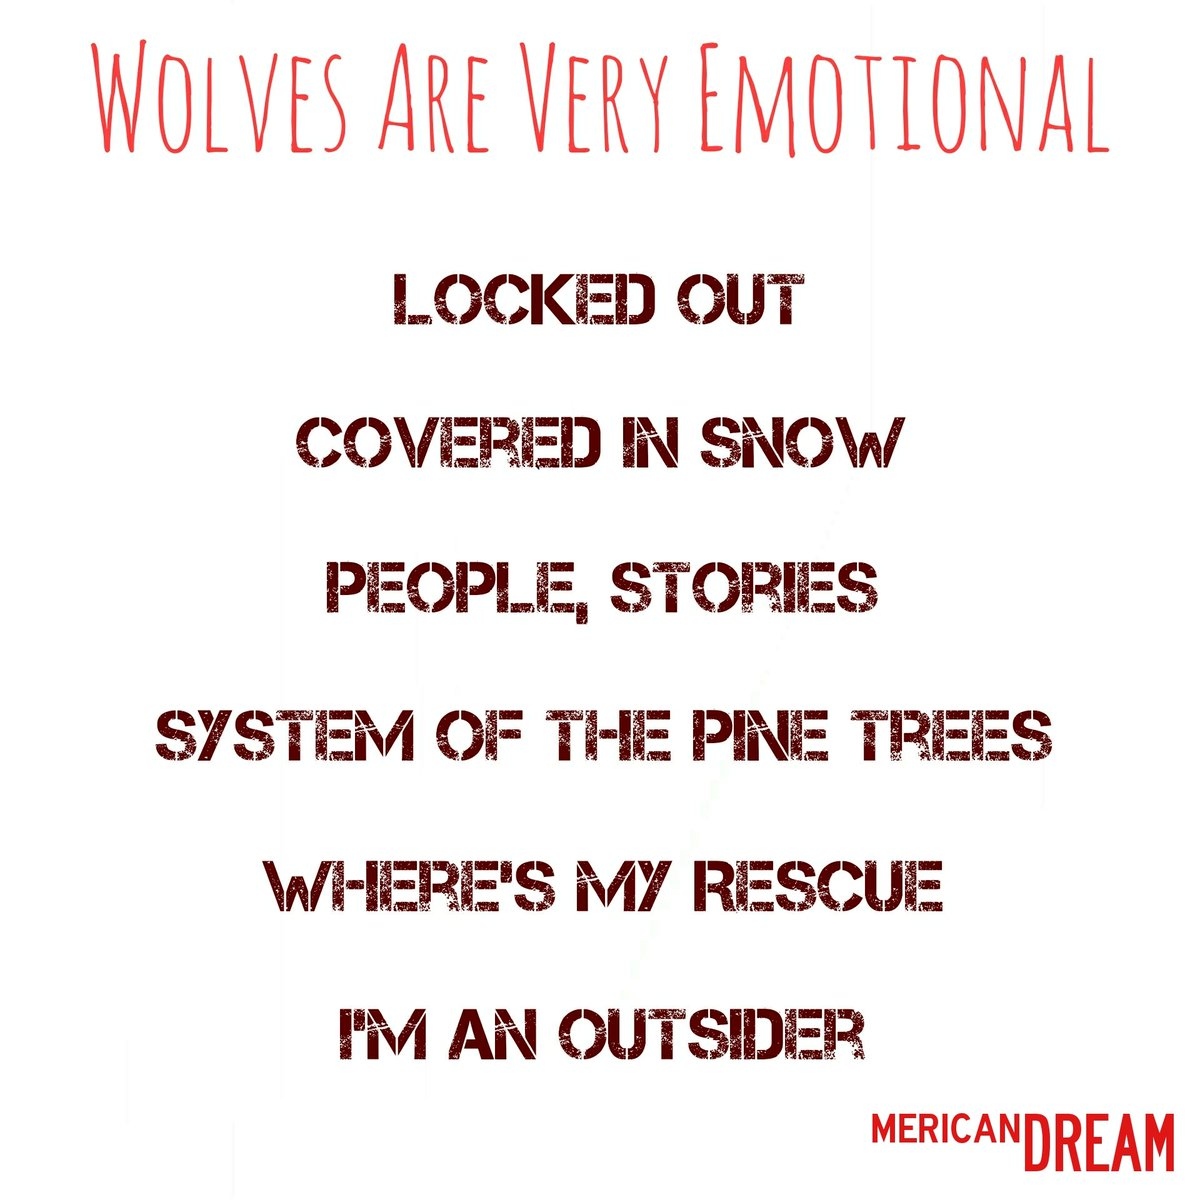 Track listing for ♦️Wolves Are Very Emotional♦️  #Lockedout #CoveredinSnow #People #pinetrees #where #outsider #Canine #Blackjackets #Maiden #Gitalong #Holy #Wolf https://t.co/kqO1gaIiyz https://t.co/HxOjFlrF5I